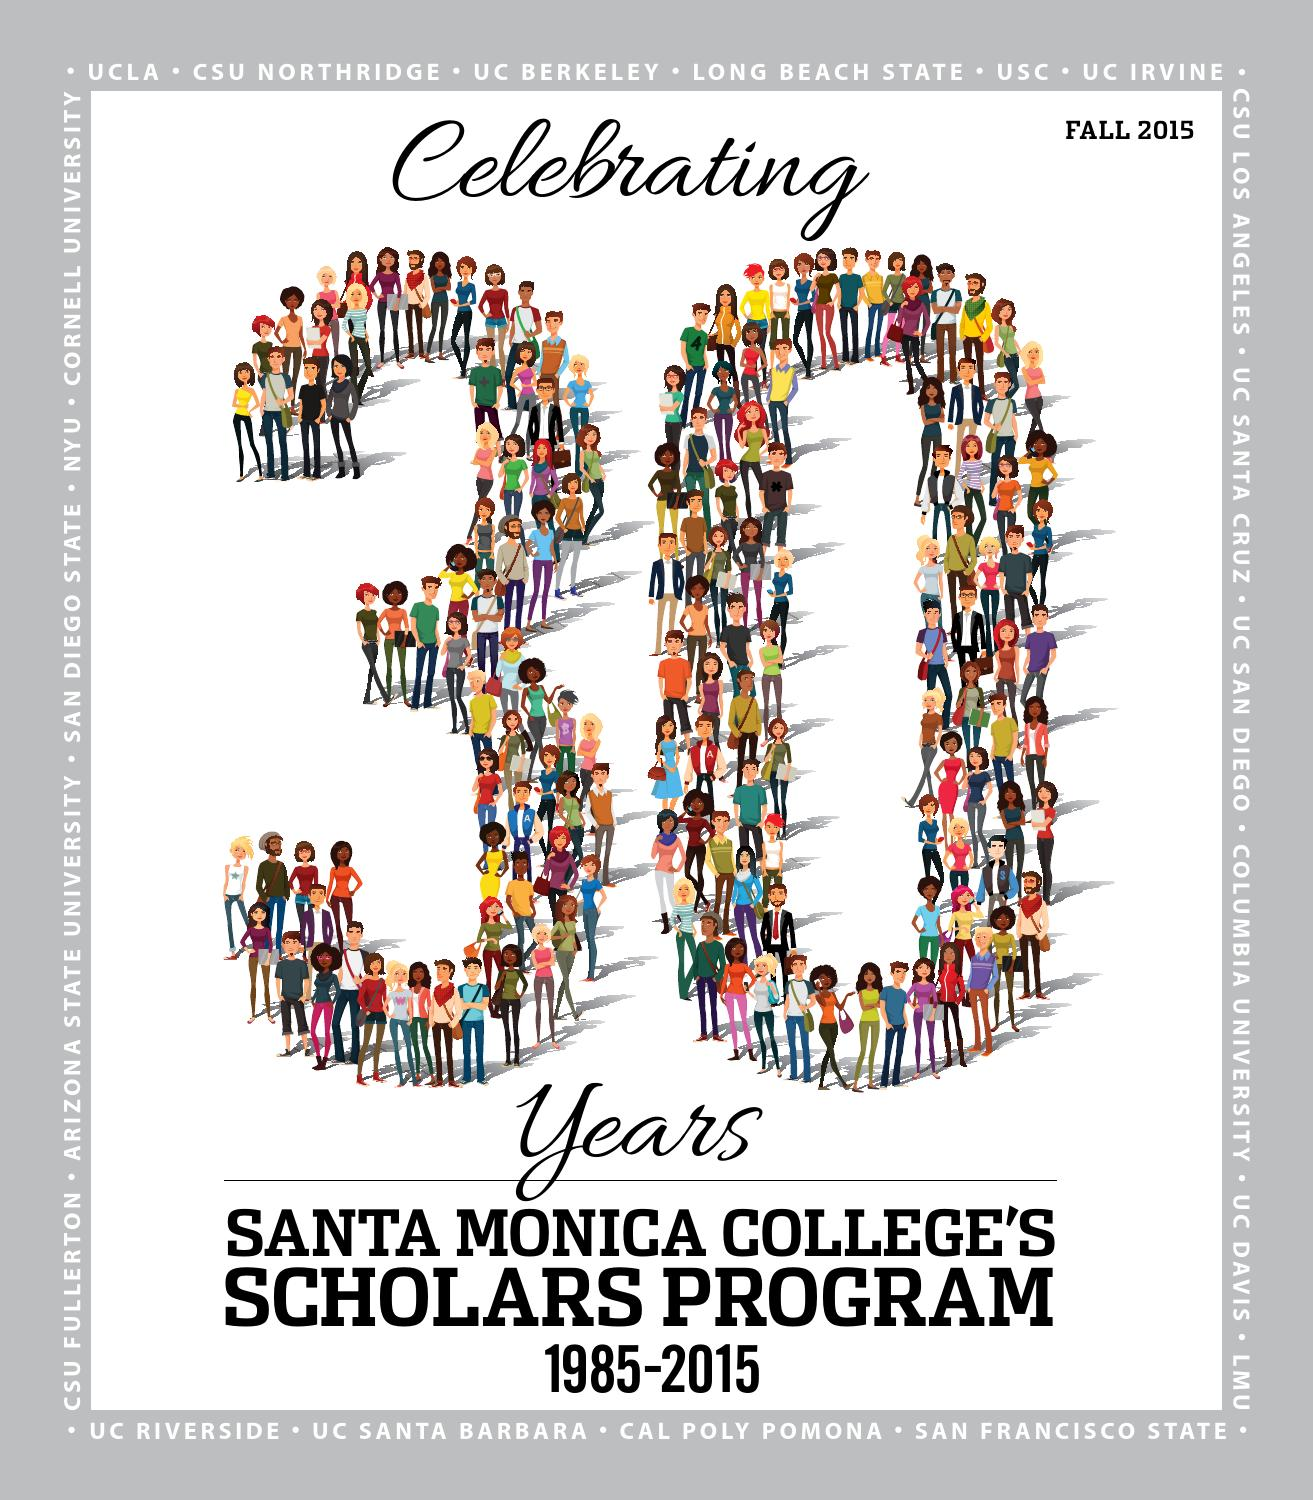 hight resolution of Fall 2015 Classes at Santa Monica College by SantaMonicaCollege - issuu